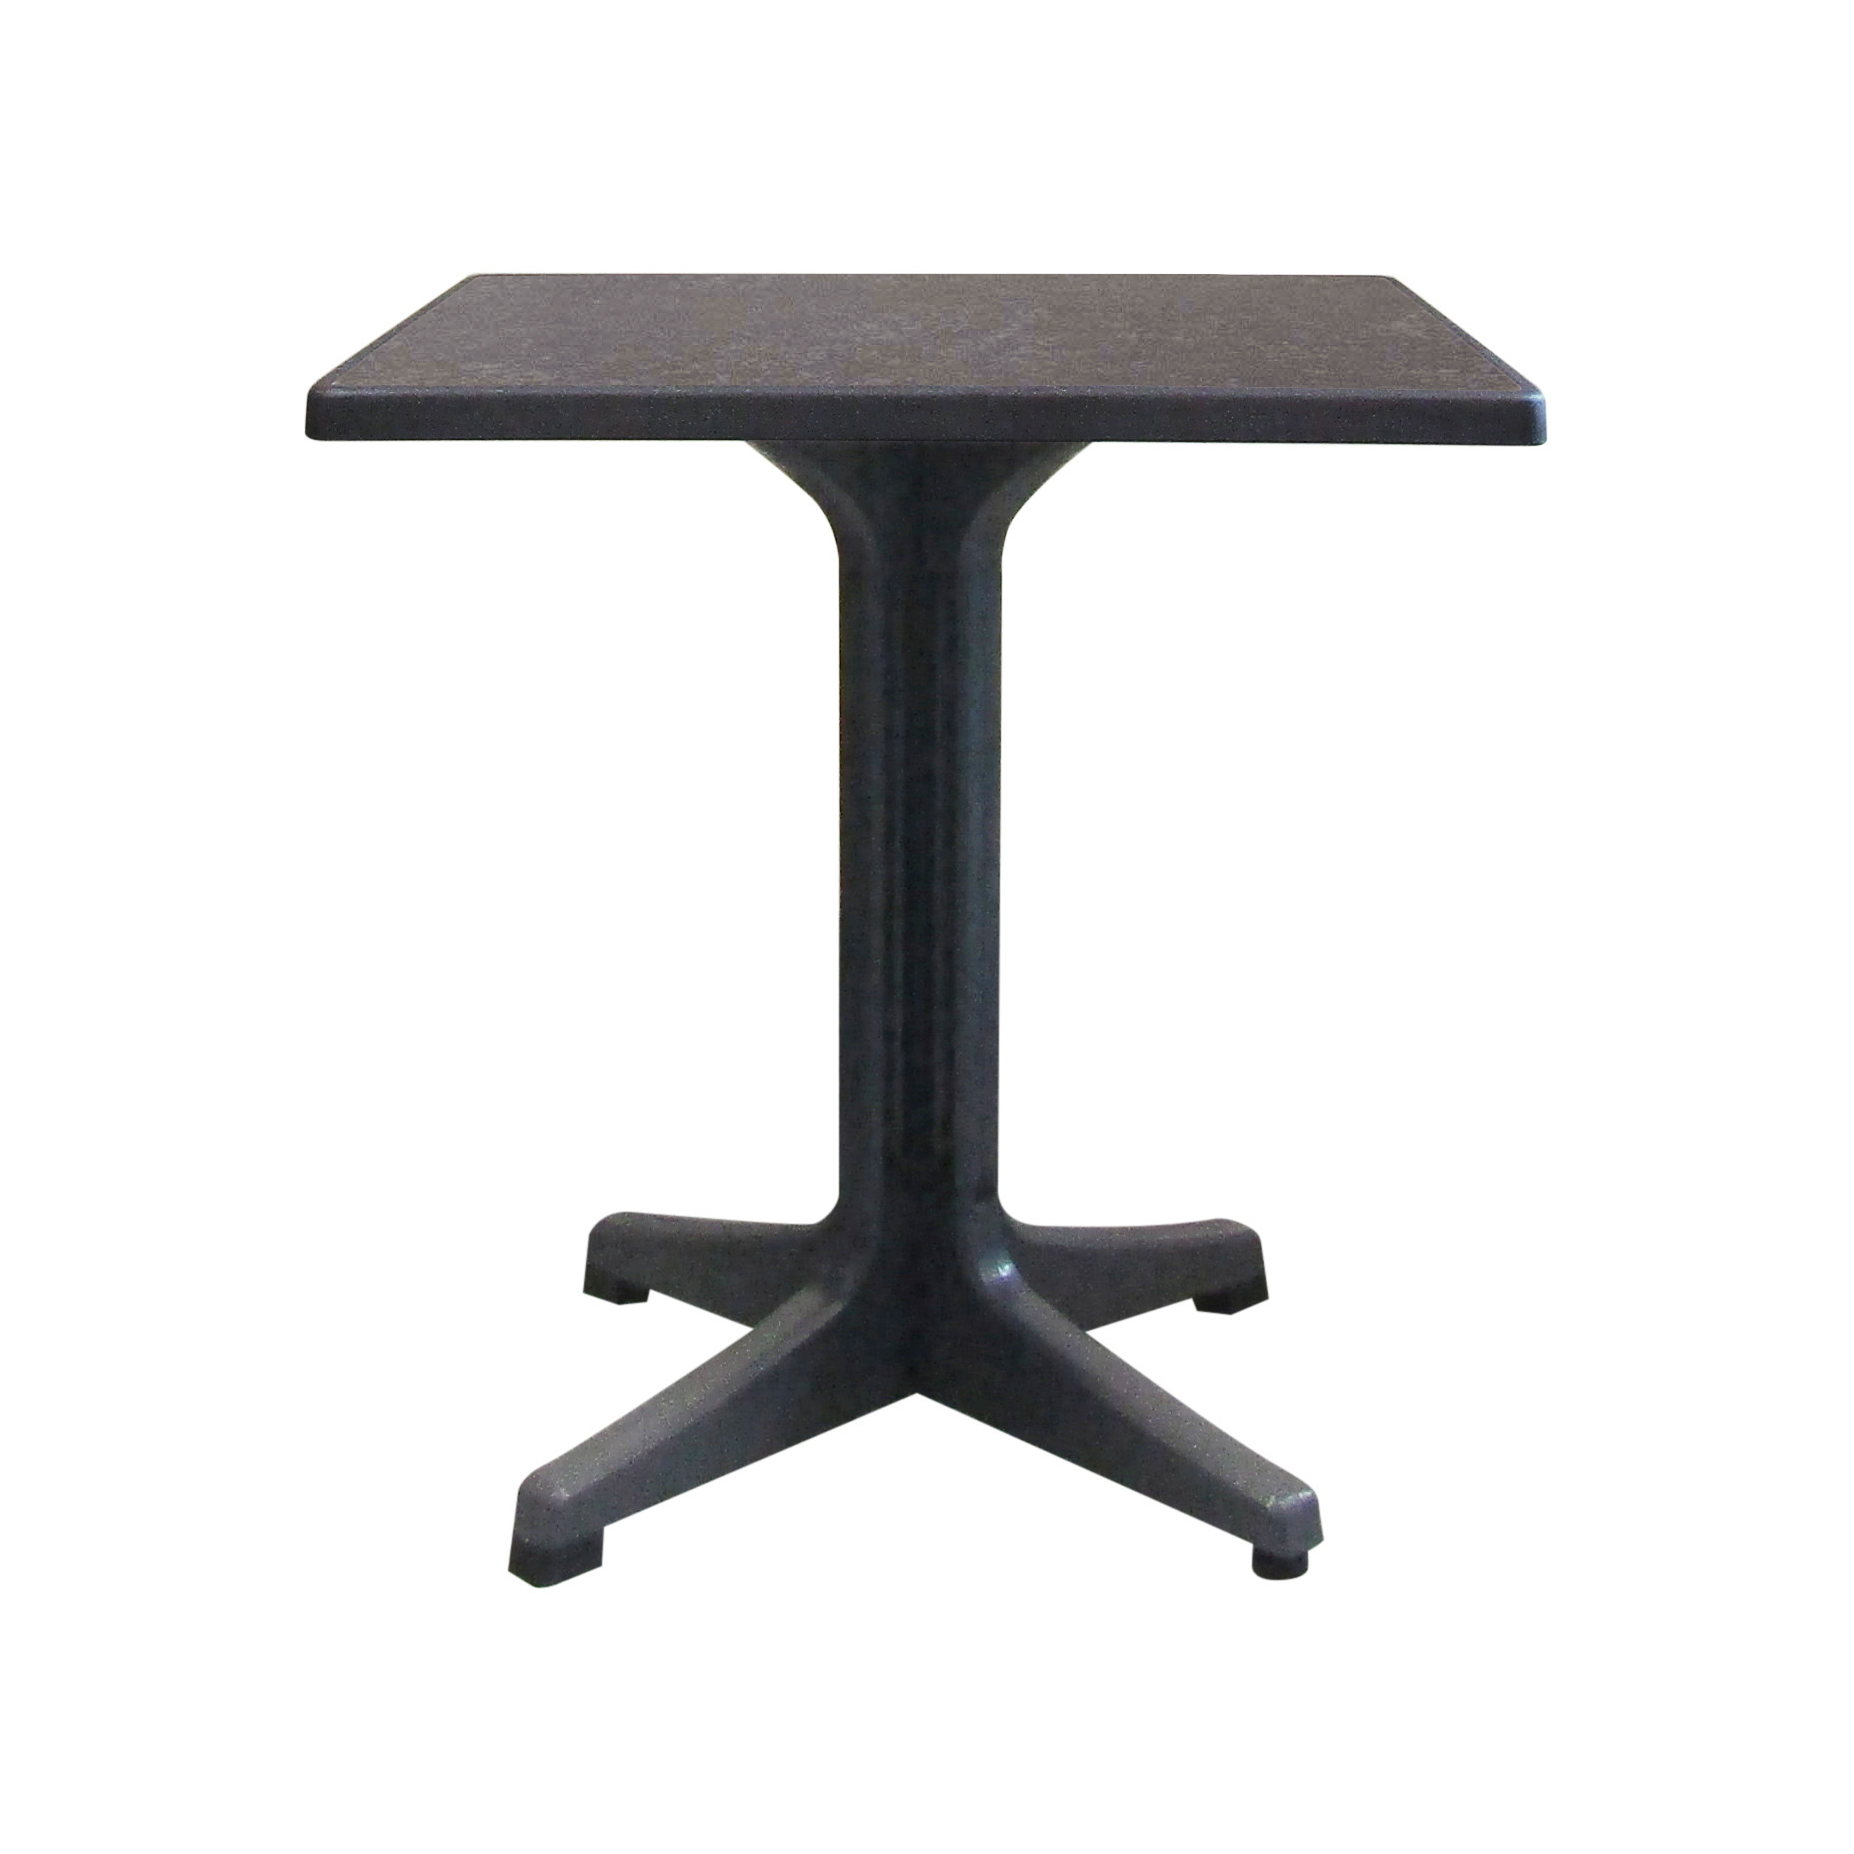 Grosfillex US283744 table, outdoor